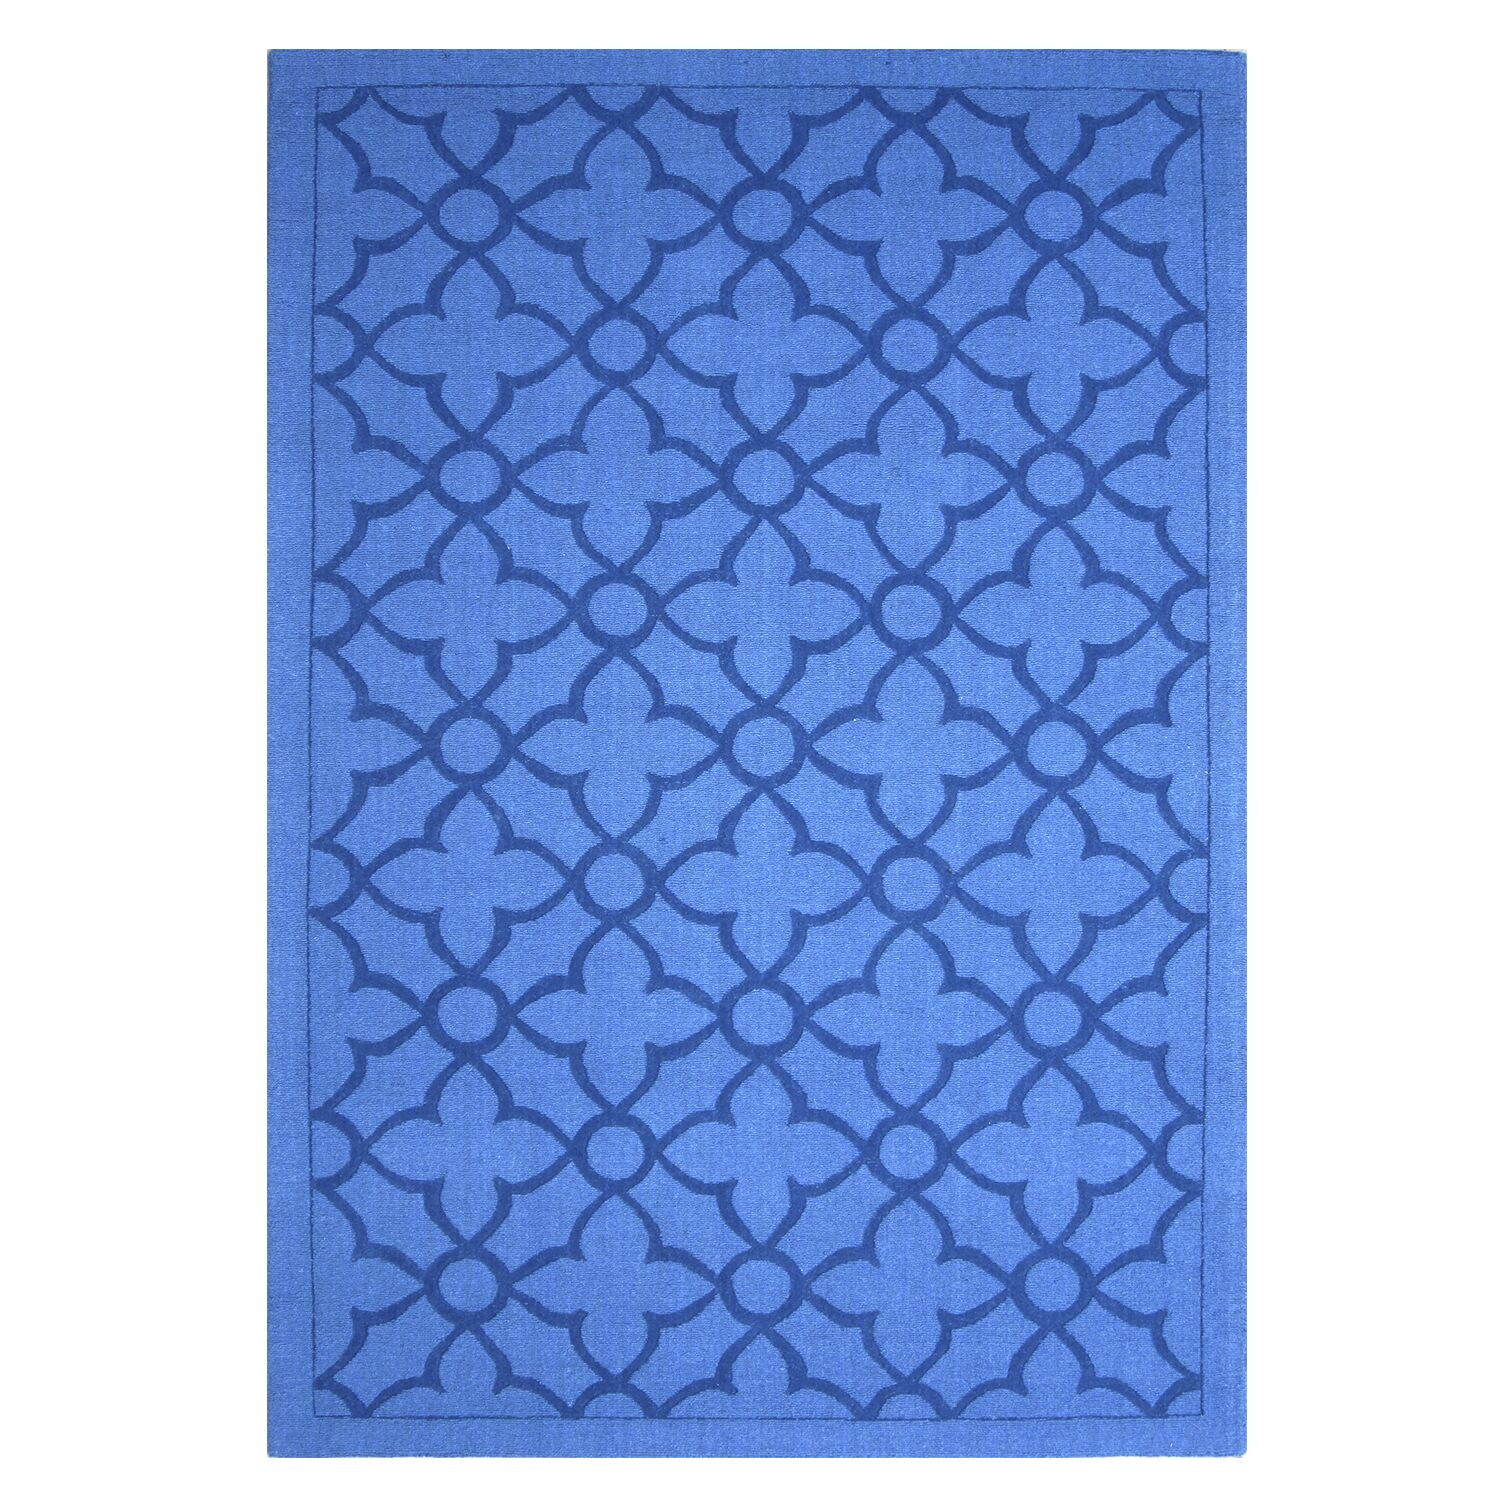 Flamenco Hana Hand-Loomed Royal Blue Area Rug Rug Size: Rectangle 8' x 10'